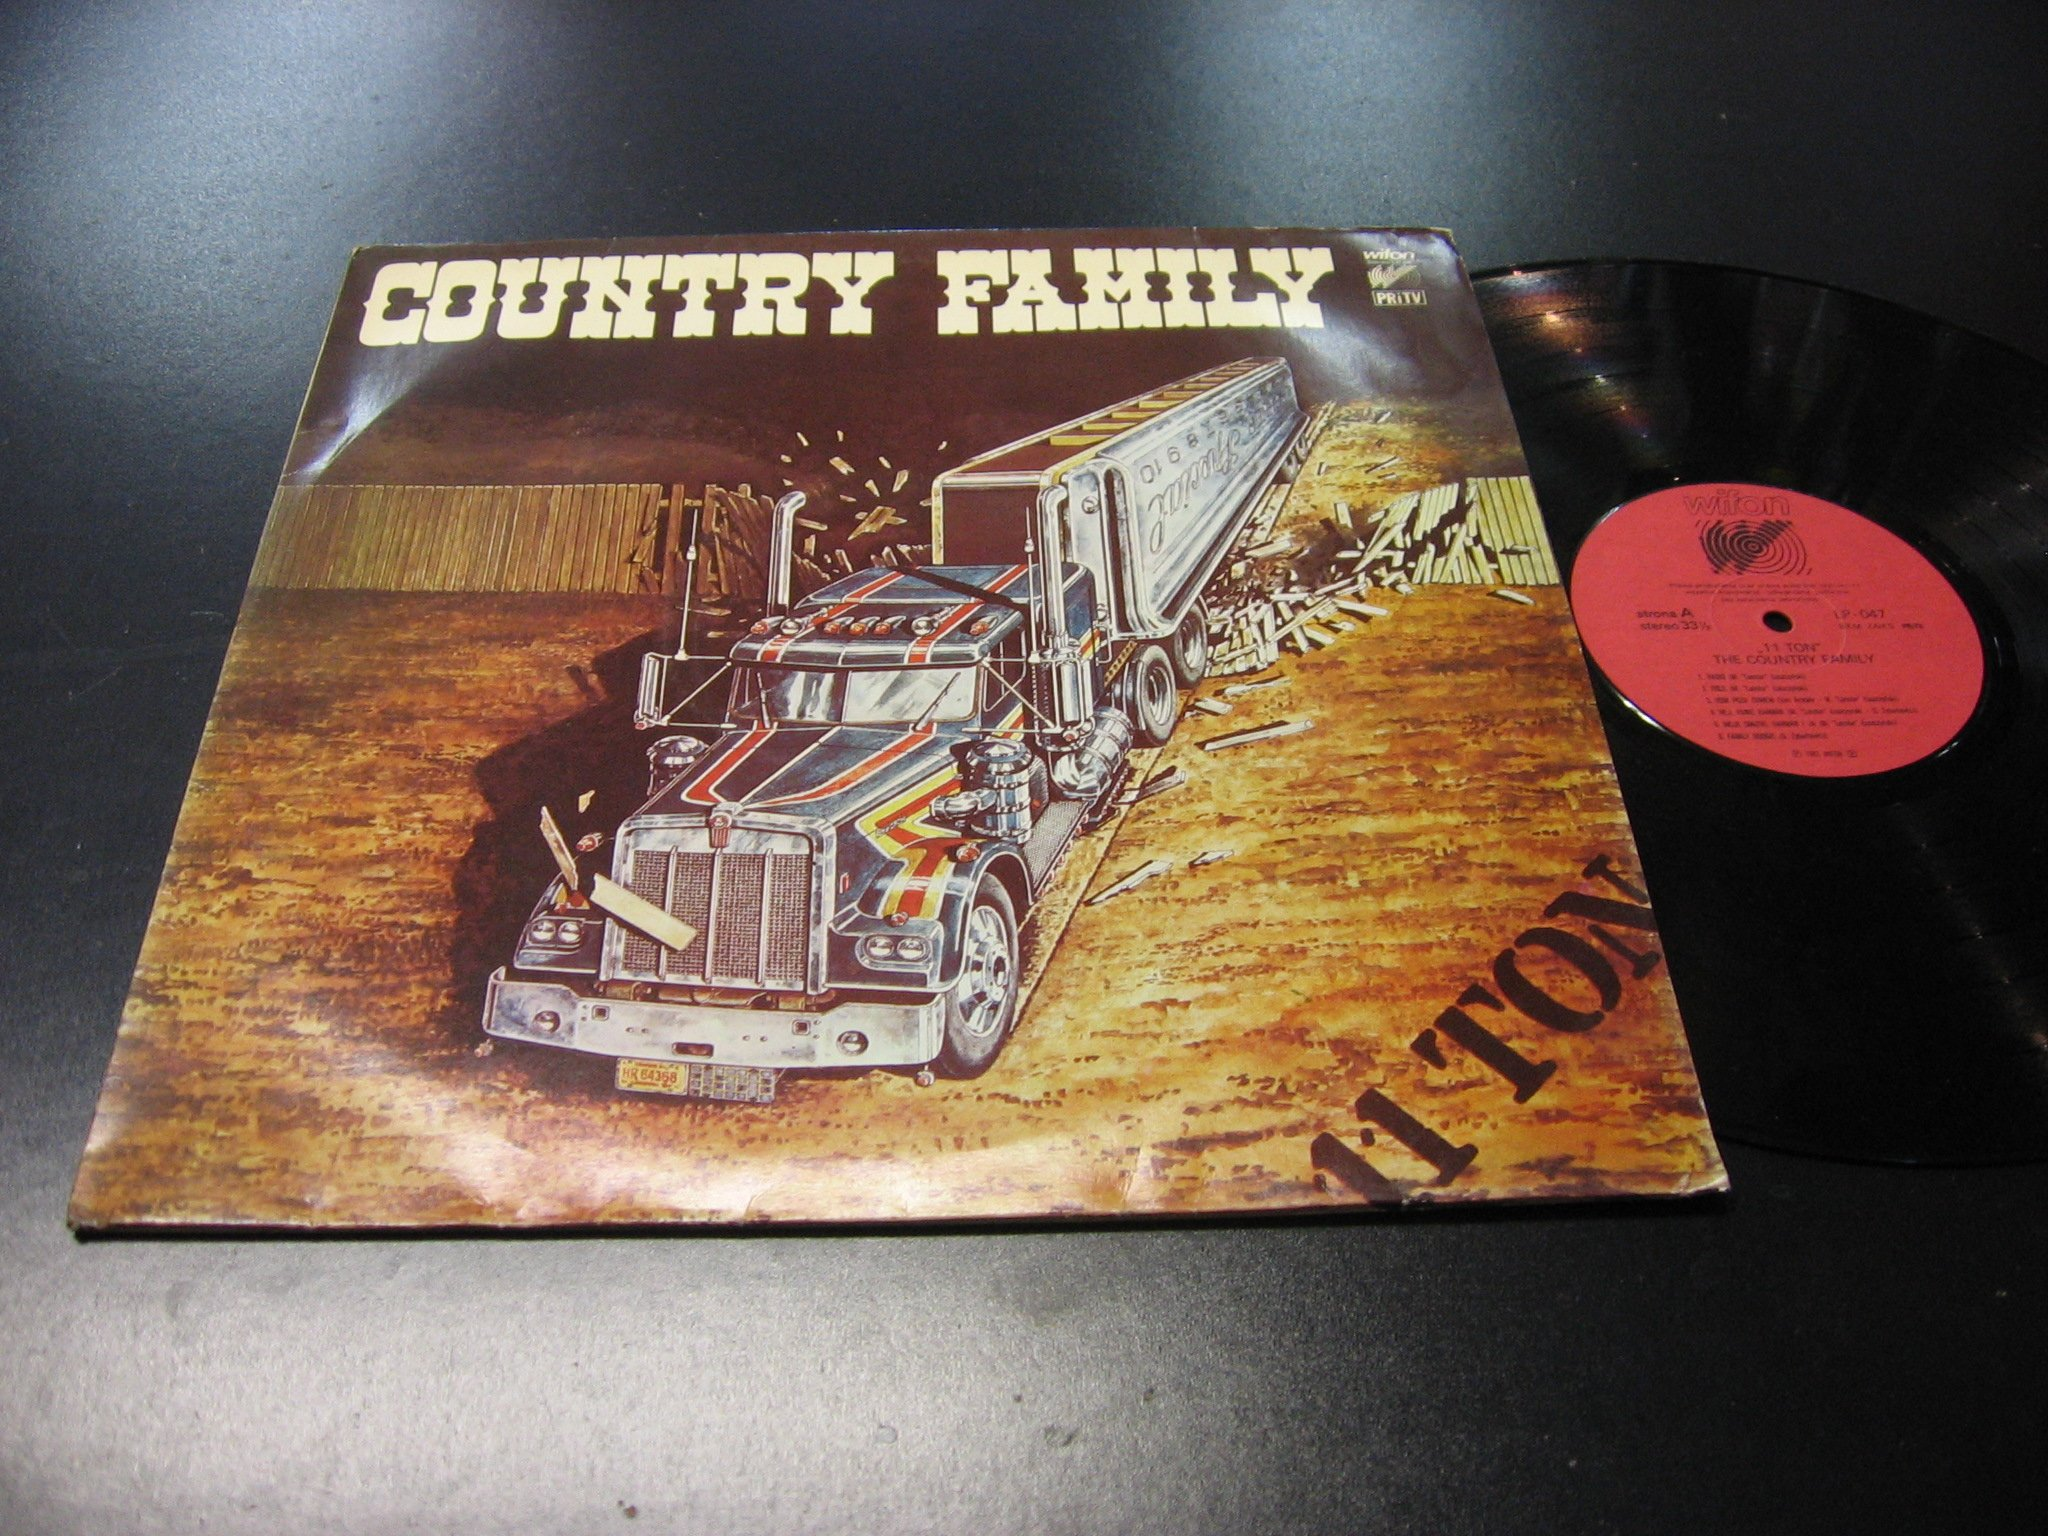 COUNTRY FAMILY - LP - Opole